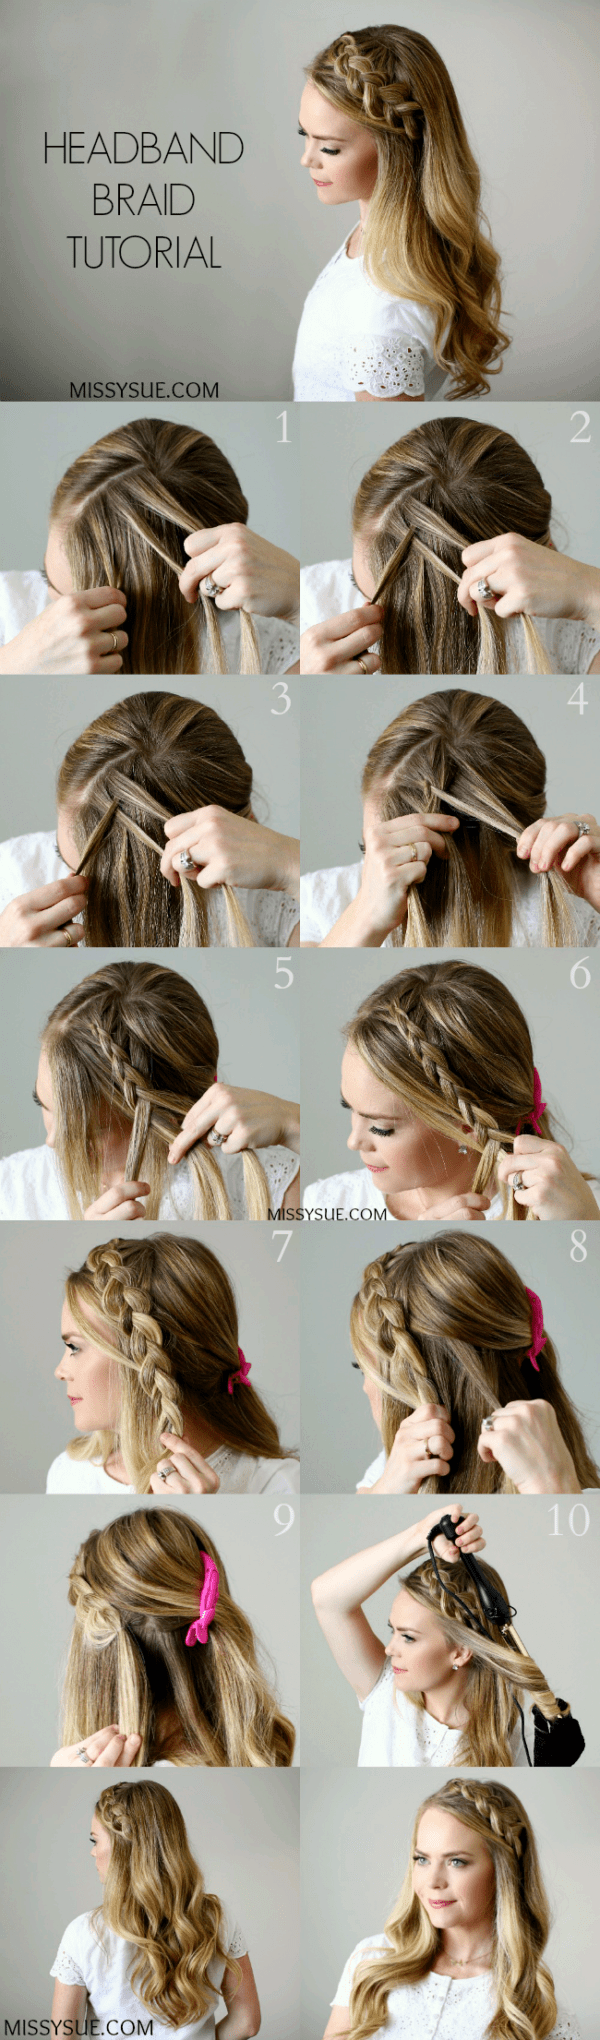 Ready in 5 Minutes: Easy Hairstyles For Trendy Girls